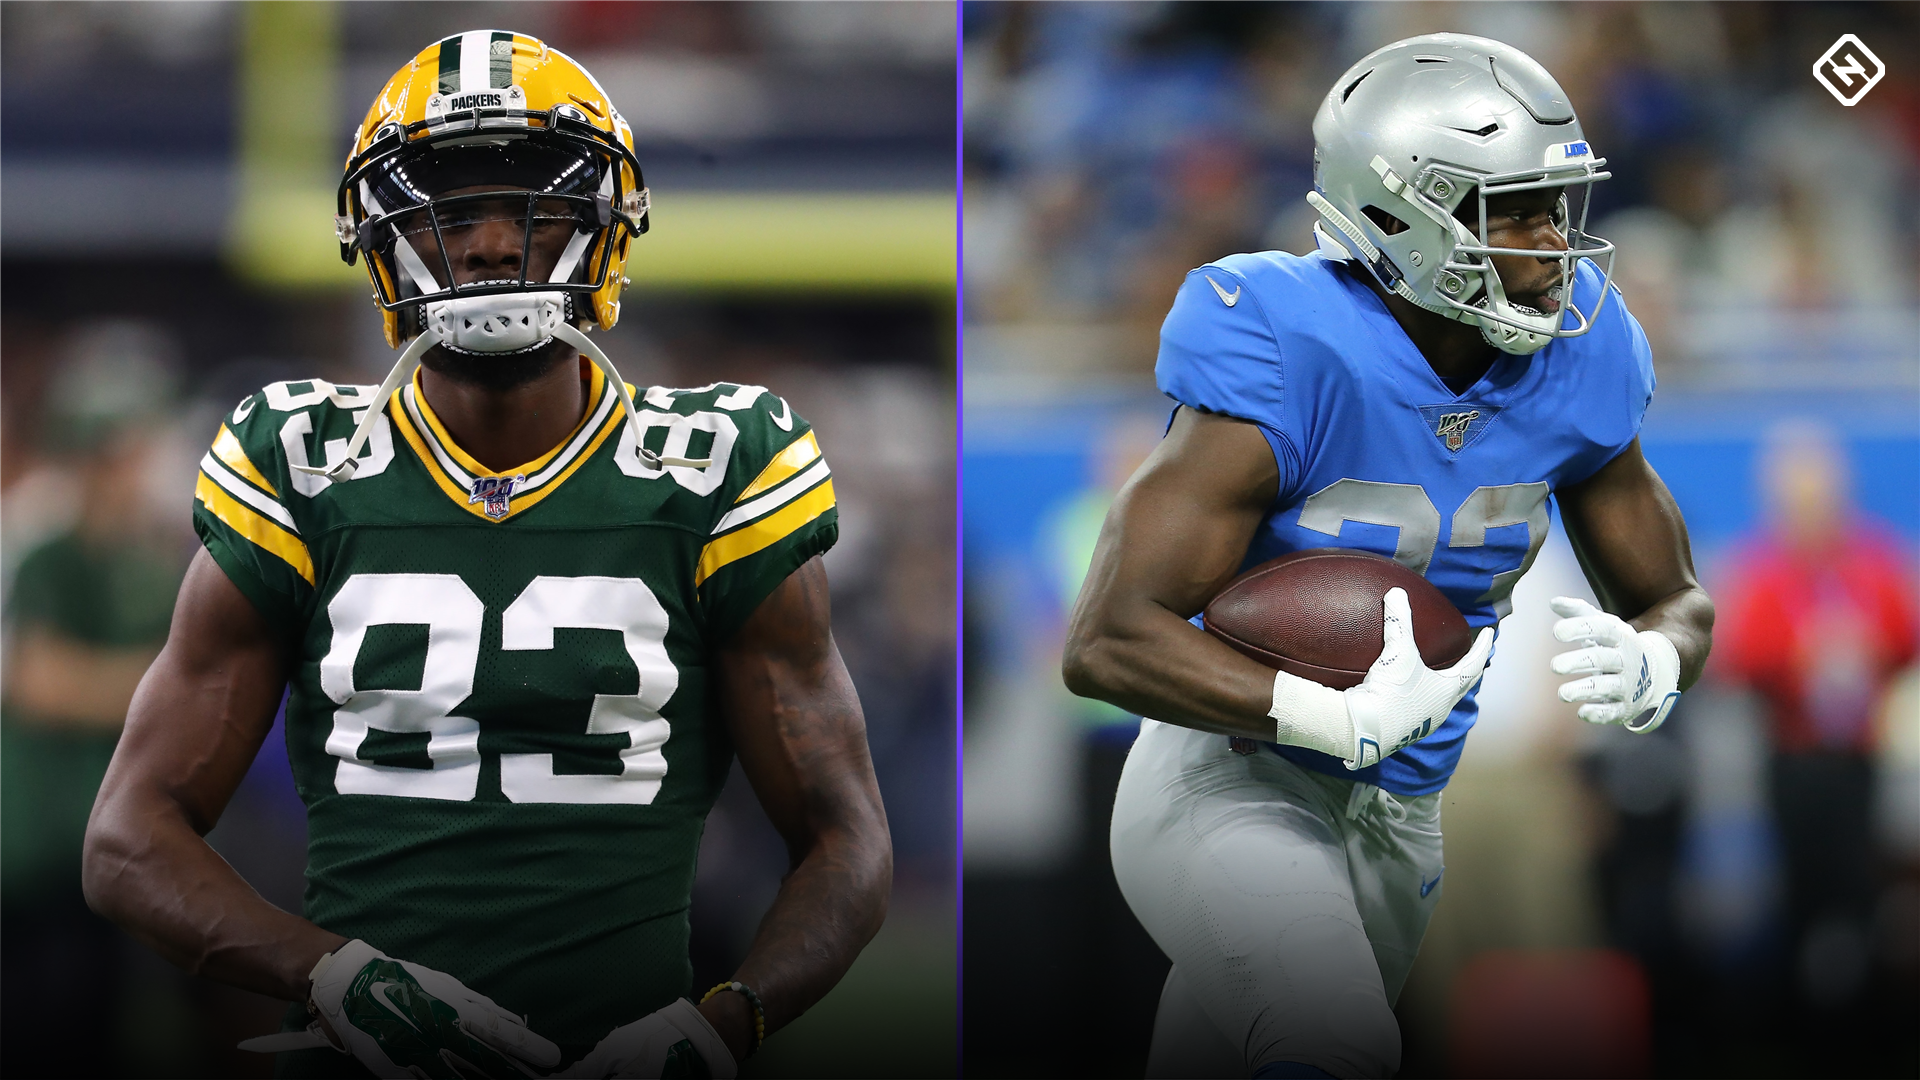 DraftKings Week 6 Monday Night Showdown: Picks, advice for Packers vs. Lions NFL DFS